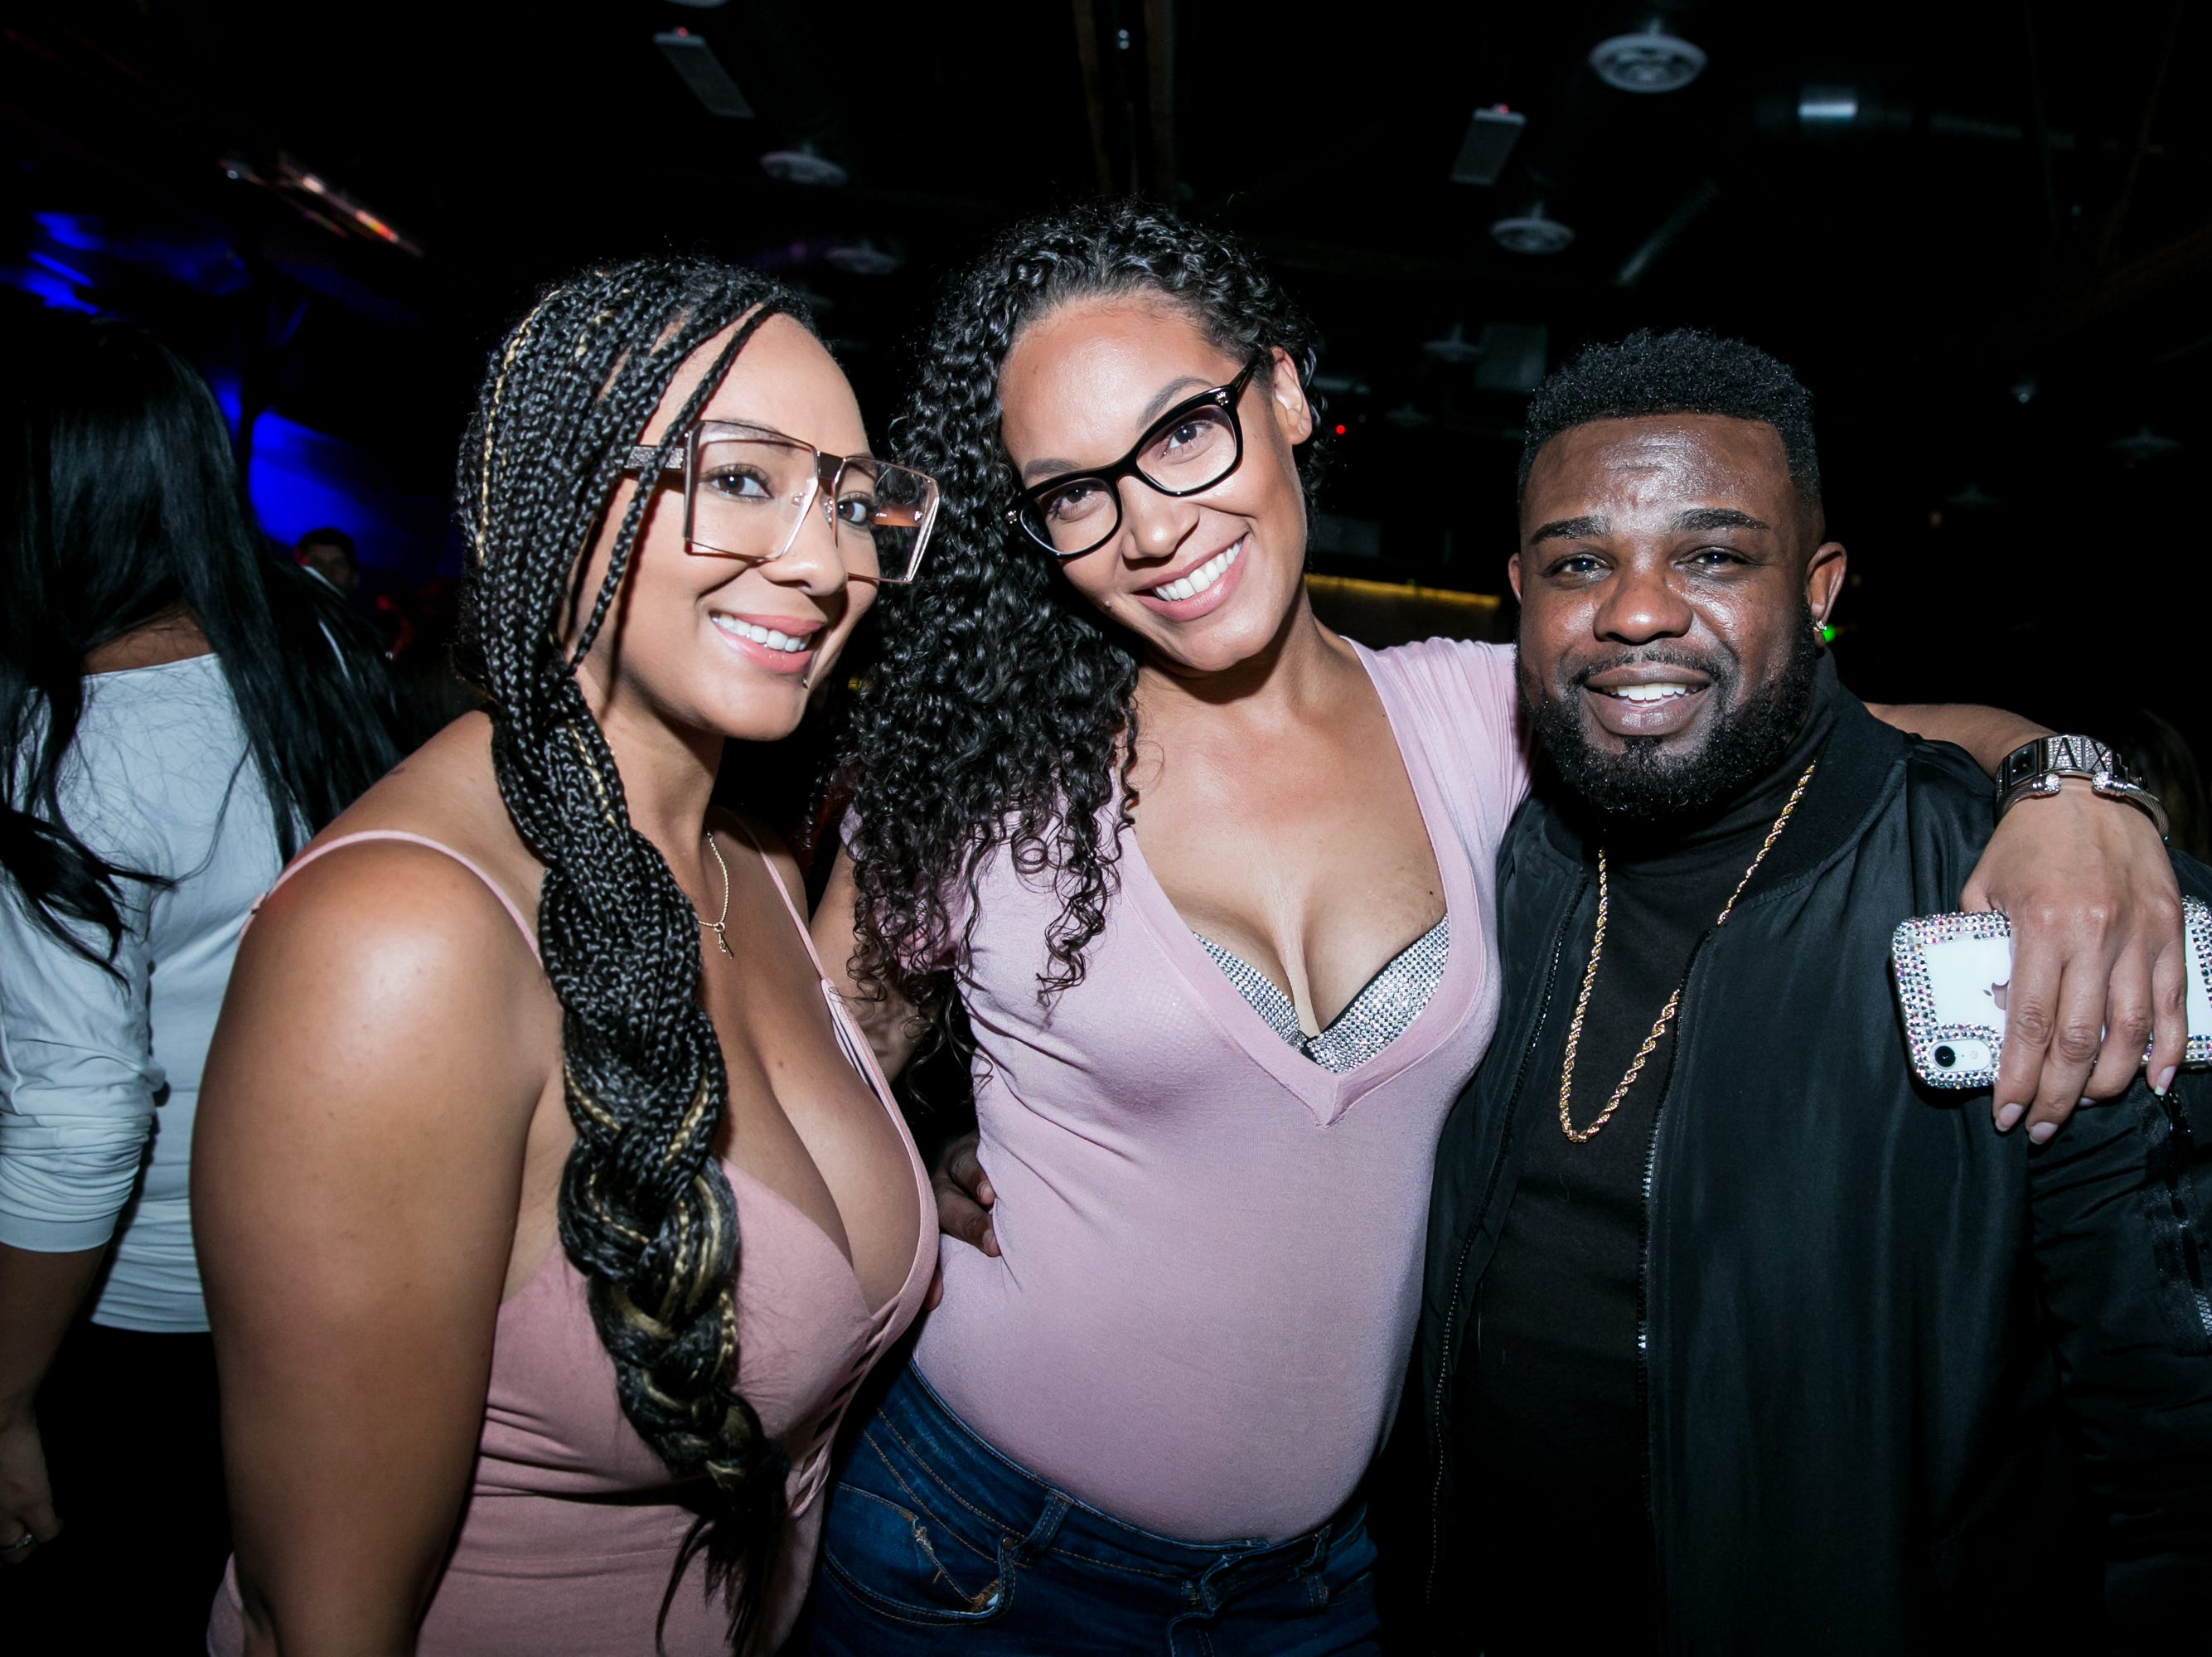 This trio had a lot of fun during Old School - 90's Hip Hop Dance Party at The Van Buren on Friday, November 30, 2018.